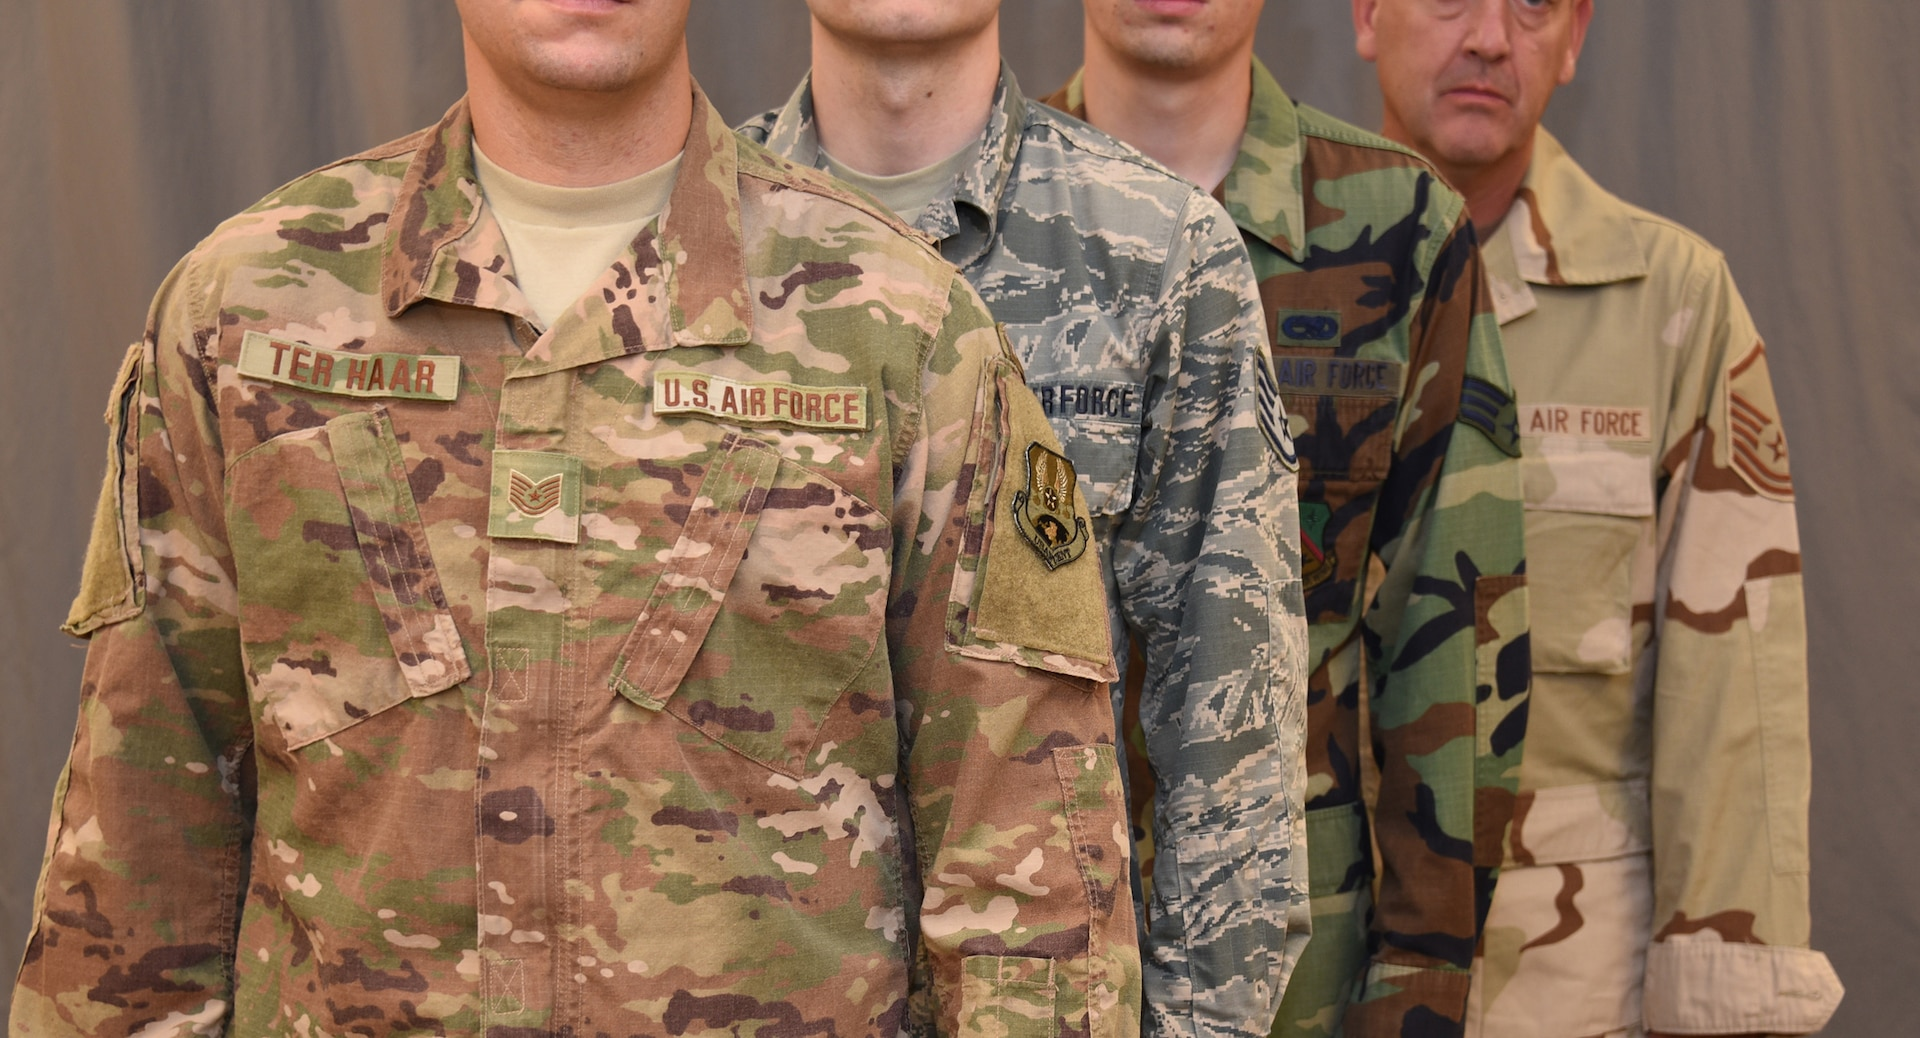 Starting October 1, 2018, the Operational Camouflage Pattern uniform will be the new uniform of the U.S. Air Force. The OCP Replaces the Airman Battle Uniform, which has been the standard uniform since 2011, when it replaced both the woodland camouflage Battle Dress Uniform and Desert Camouflage Uniform.